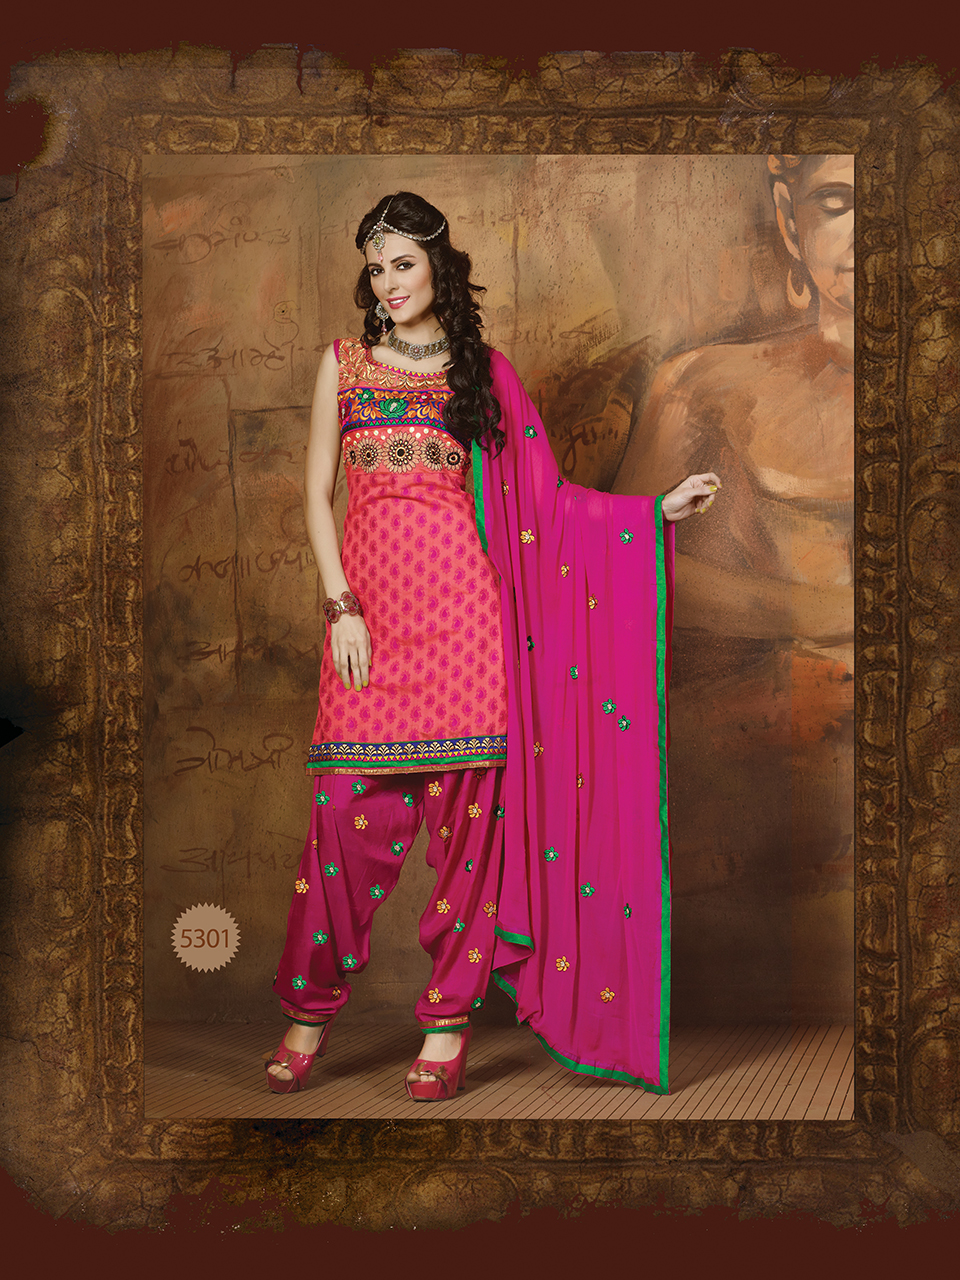 Patiala Salwar Kameez Online Shopping - Exclusive Collection of